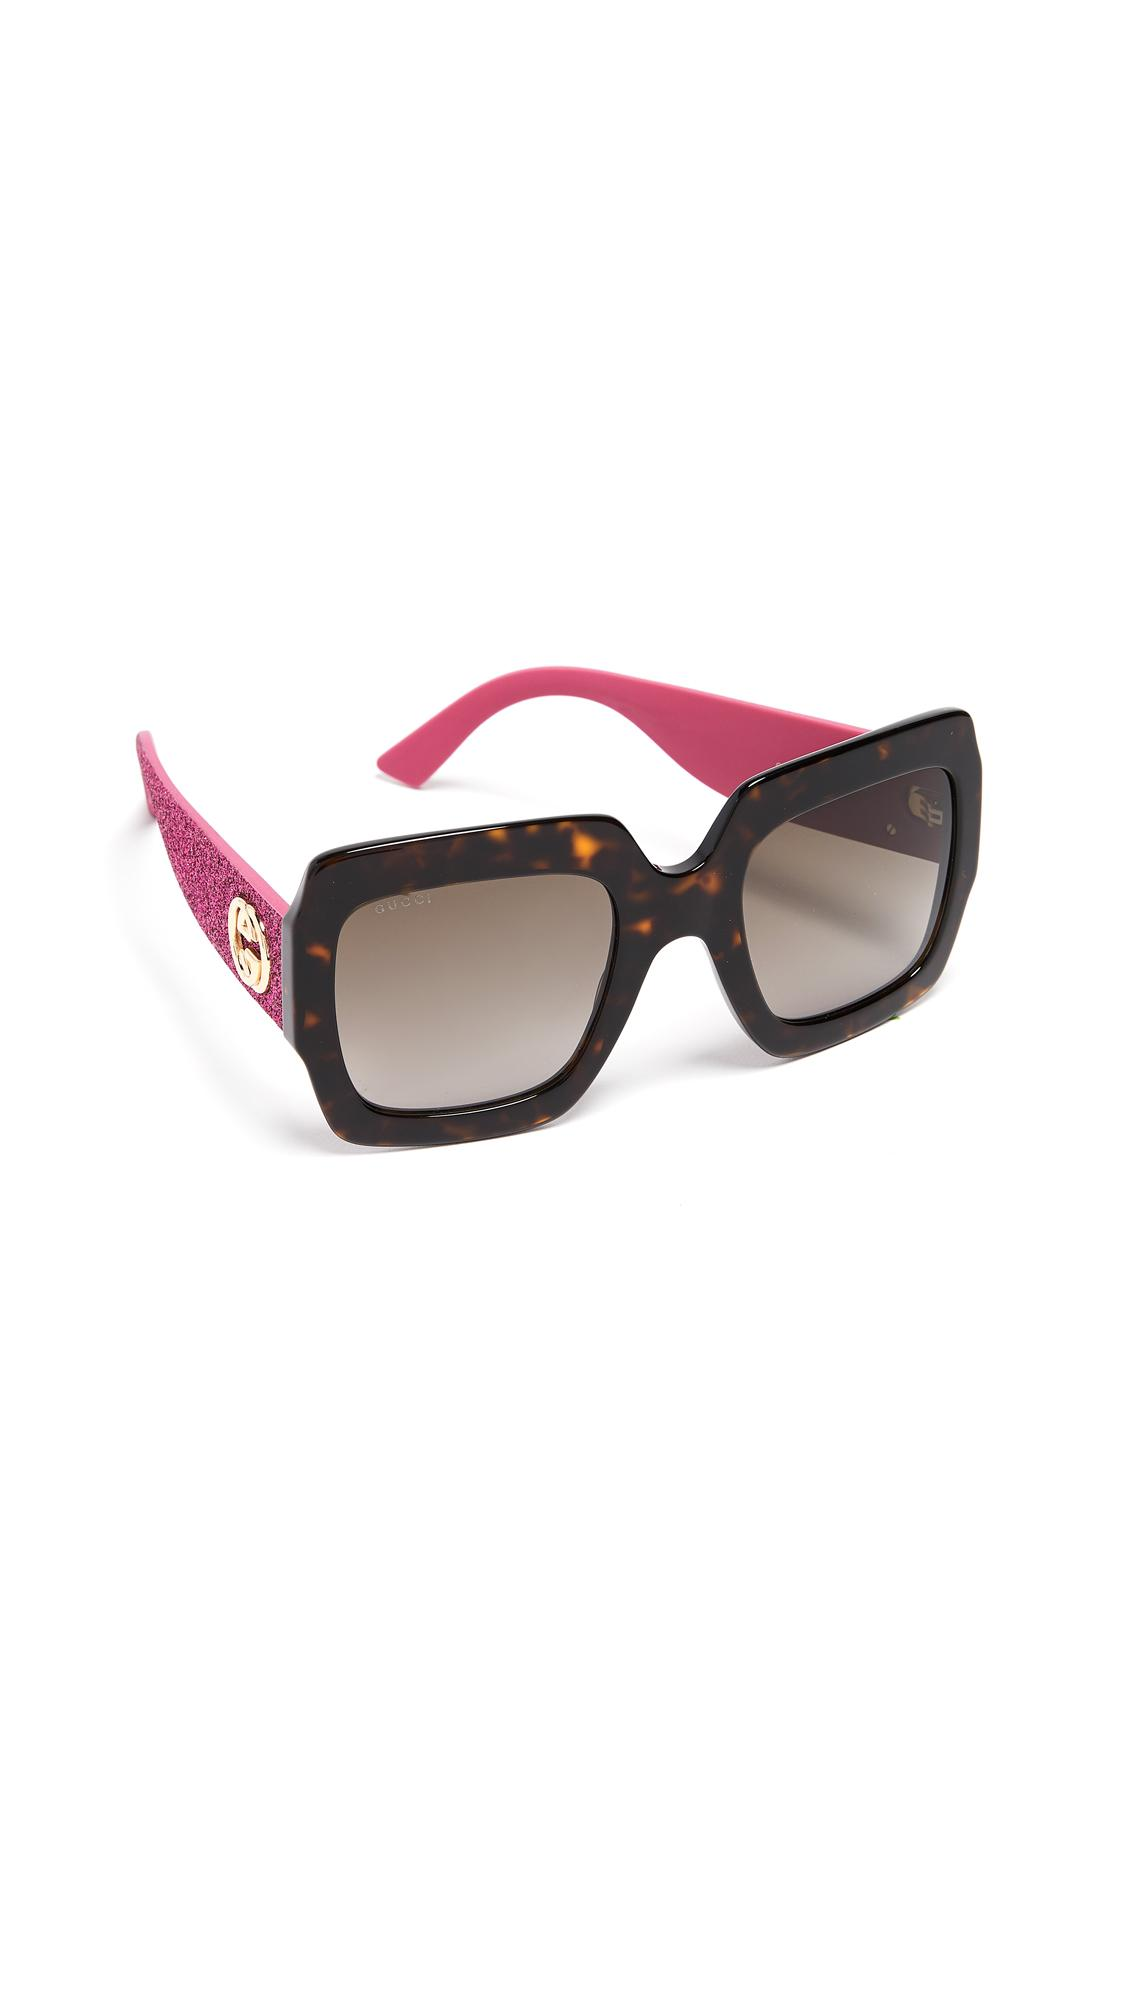 Gucci Pop Glitter Iconic Oversized Square Sunglasses In Dark Havana Glitter Pink/Brown